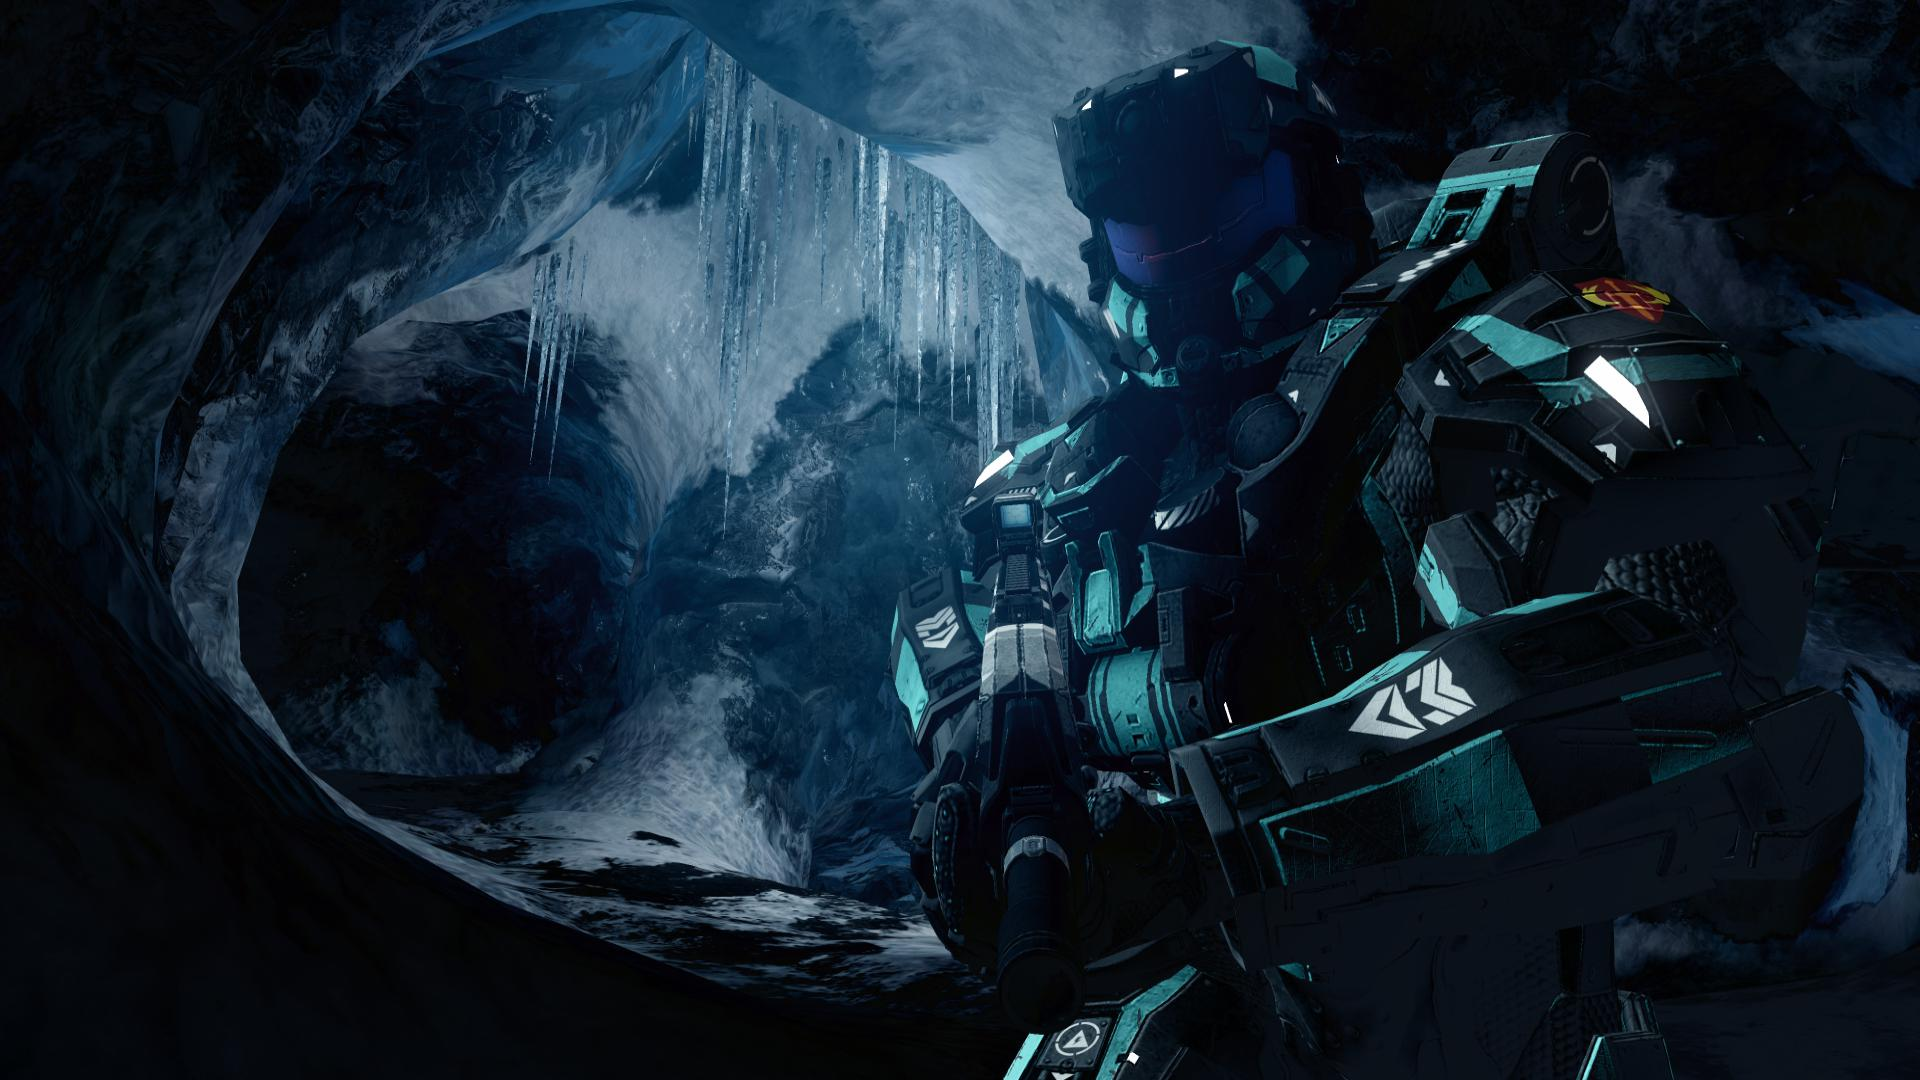 Group Of Halo 4 Spartans Wallpaper